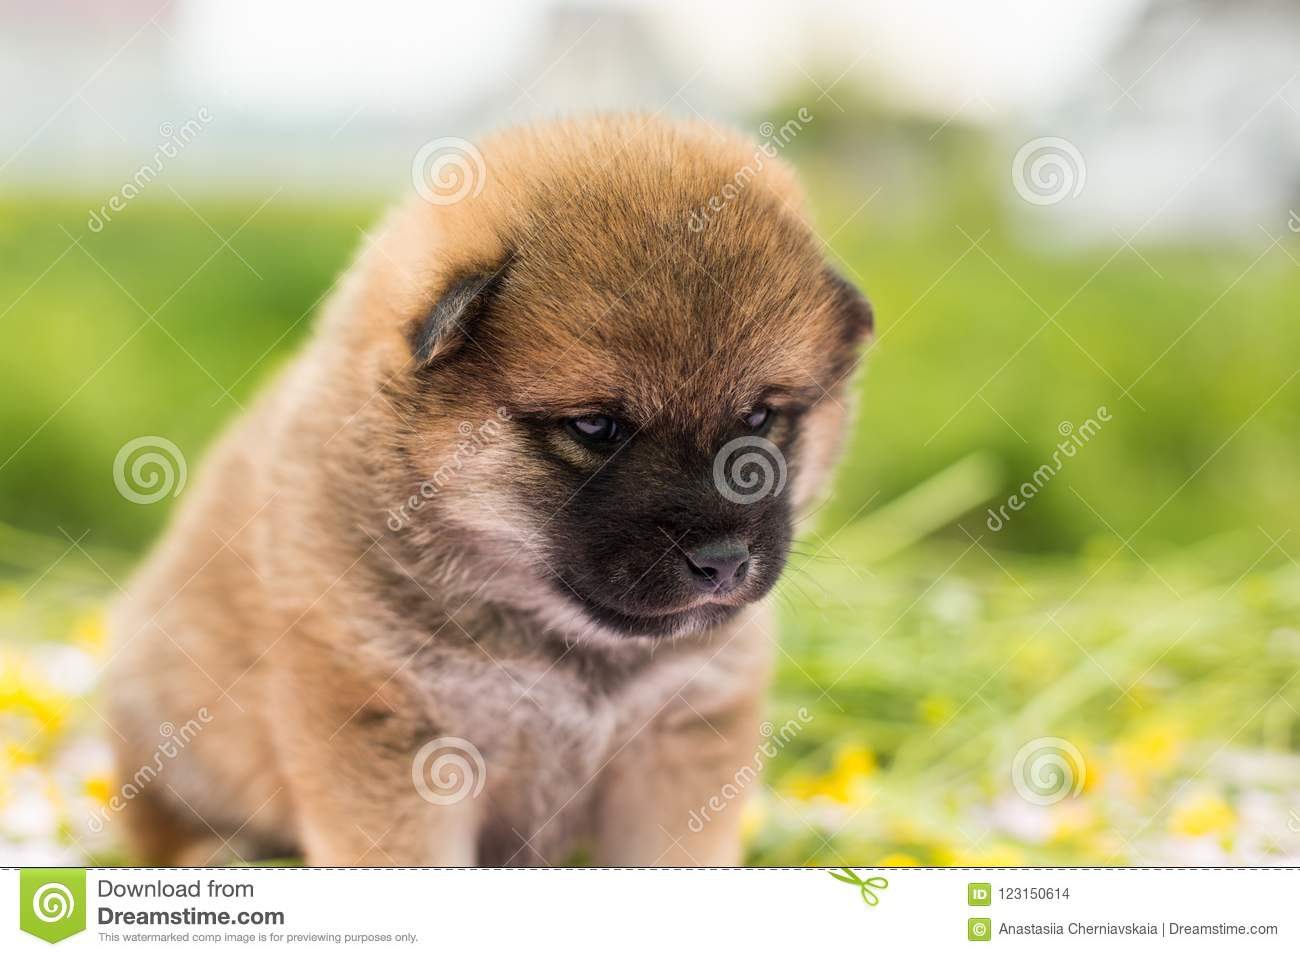 Portrait Of Cute Two Weeks Old Shiba Inu Puppy Sitting On The Table In The Buttercup Meadow Stock Photo Image Of Mammal Summer 123150614